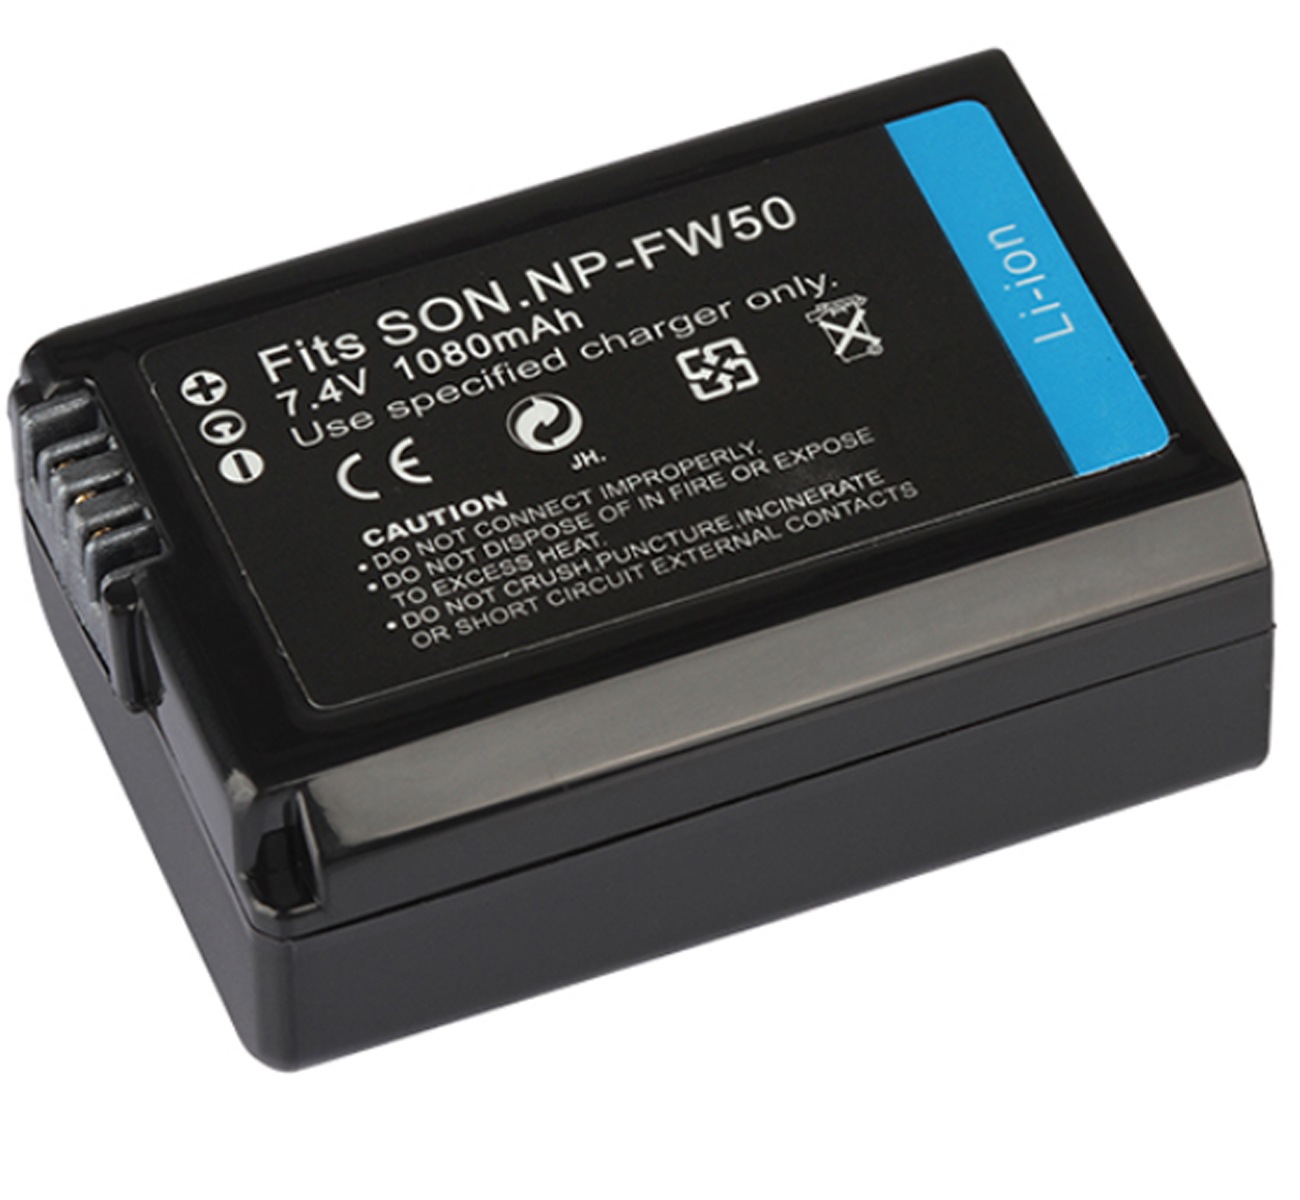 Battery Pack for <font><b>Sony</b></font> <font><b>Alpha</b></font> ILCE-3000, ILCE-<font><b>3500</b></font>, ILCE-5000, ILCE-5100, ILCE-6000, ILCE-6300,ILCE-6500 Mirrorless Digital Camera image